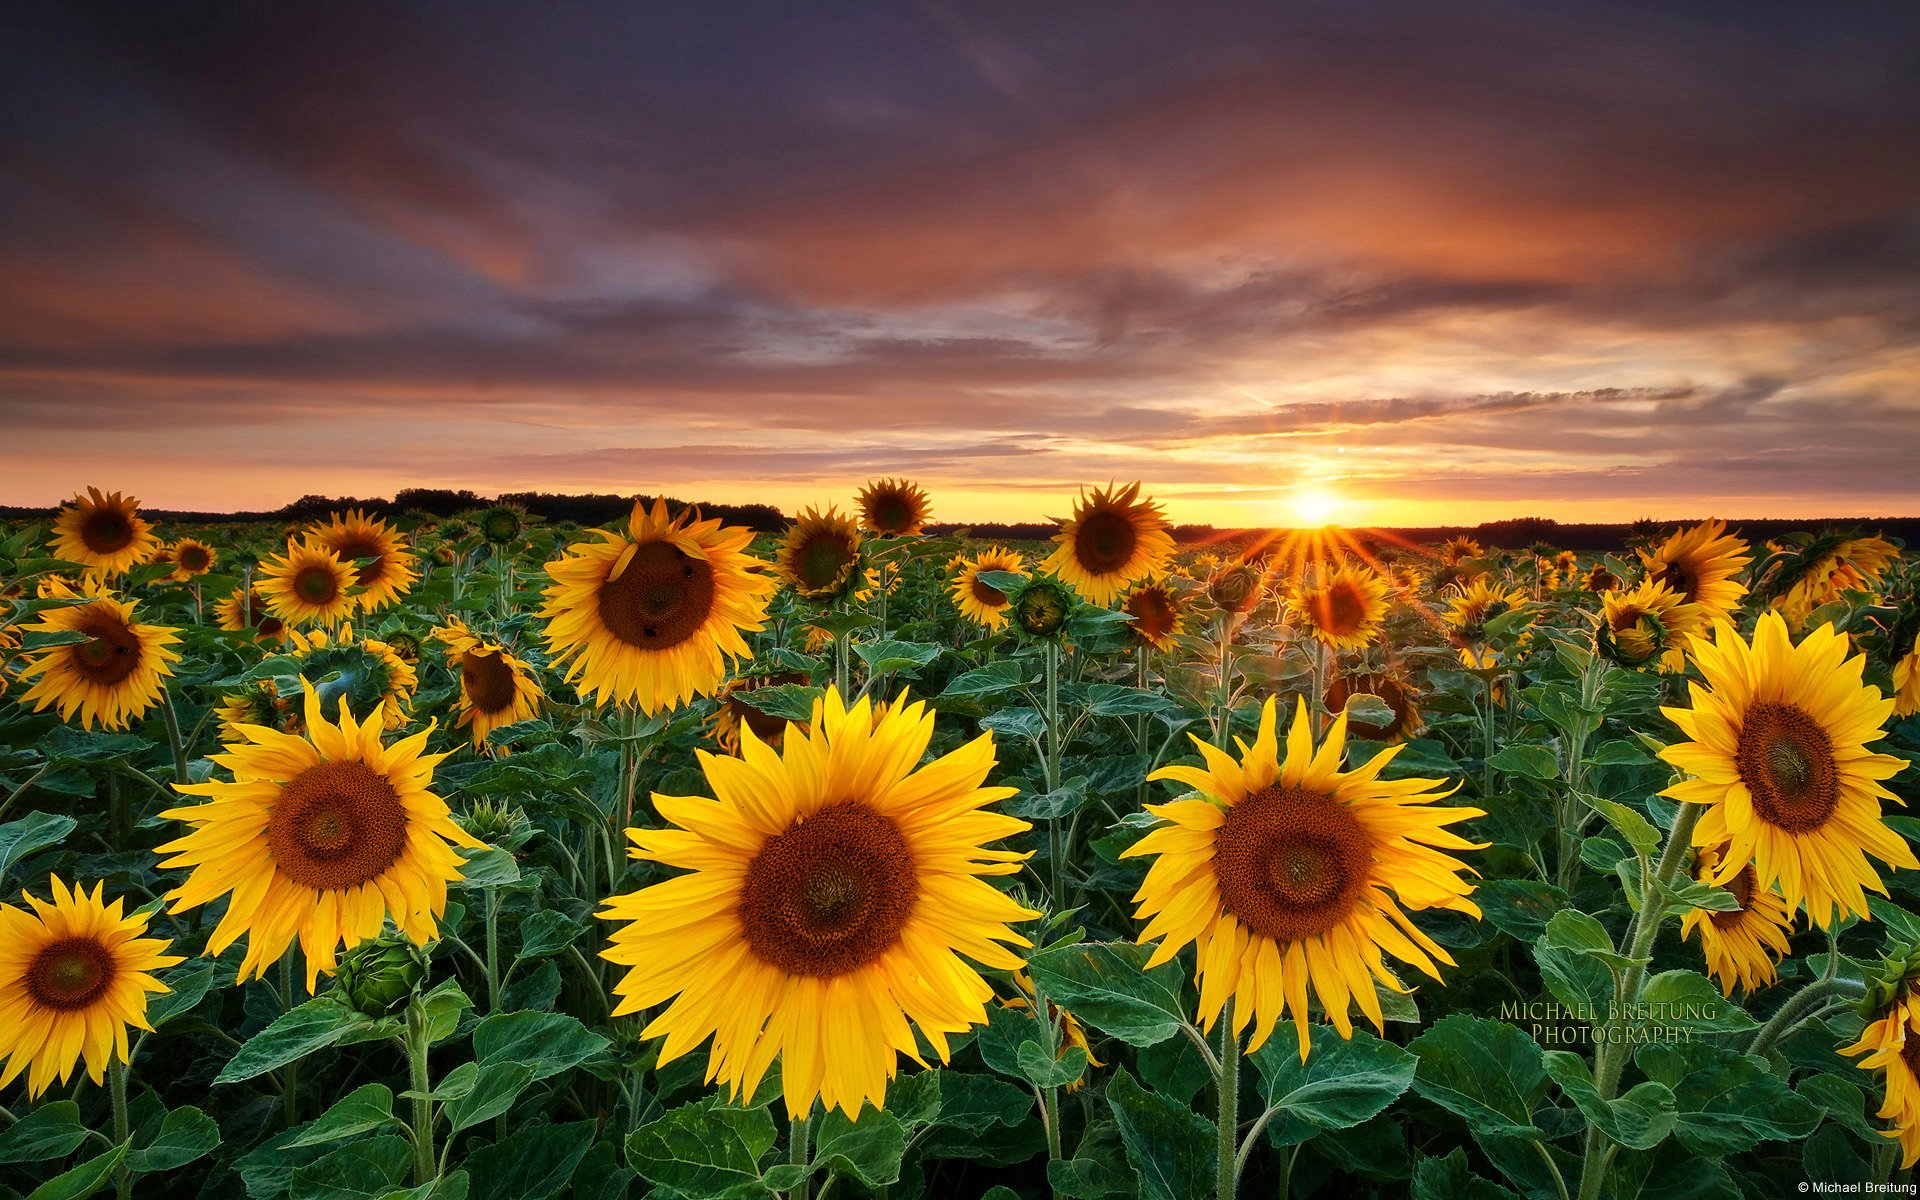 Sunflower Field 1920x1200